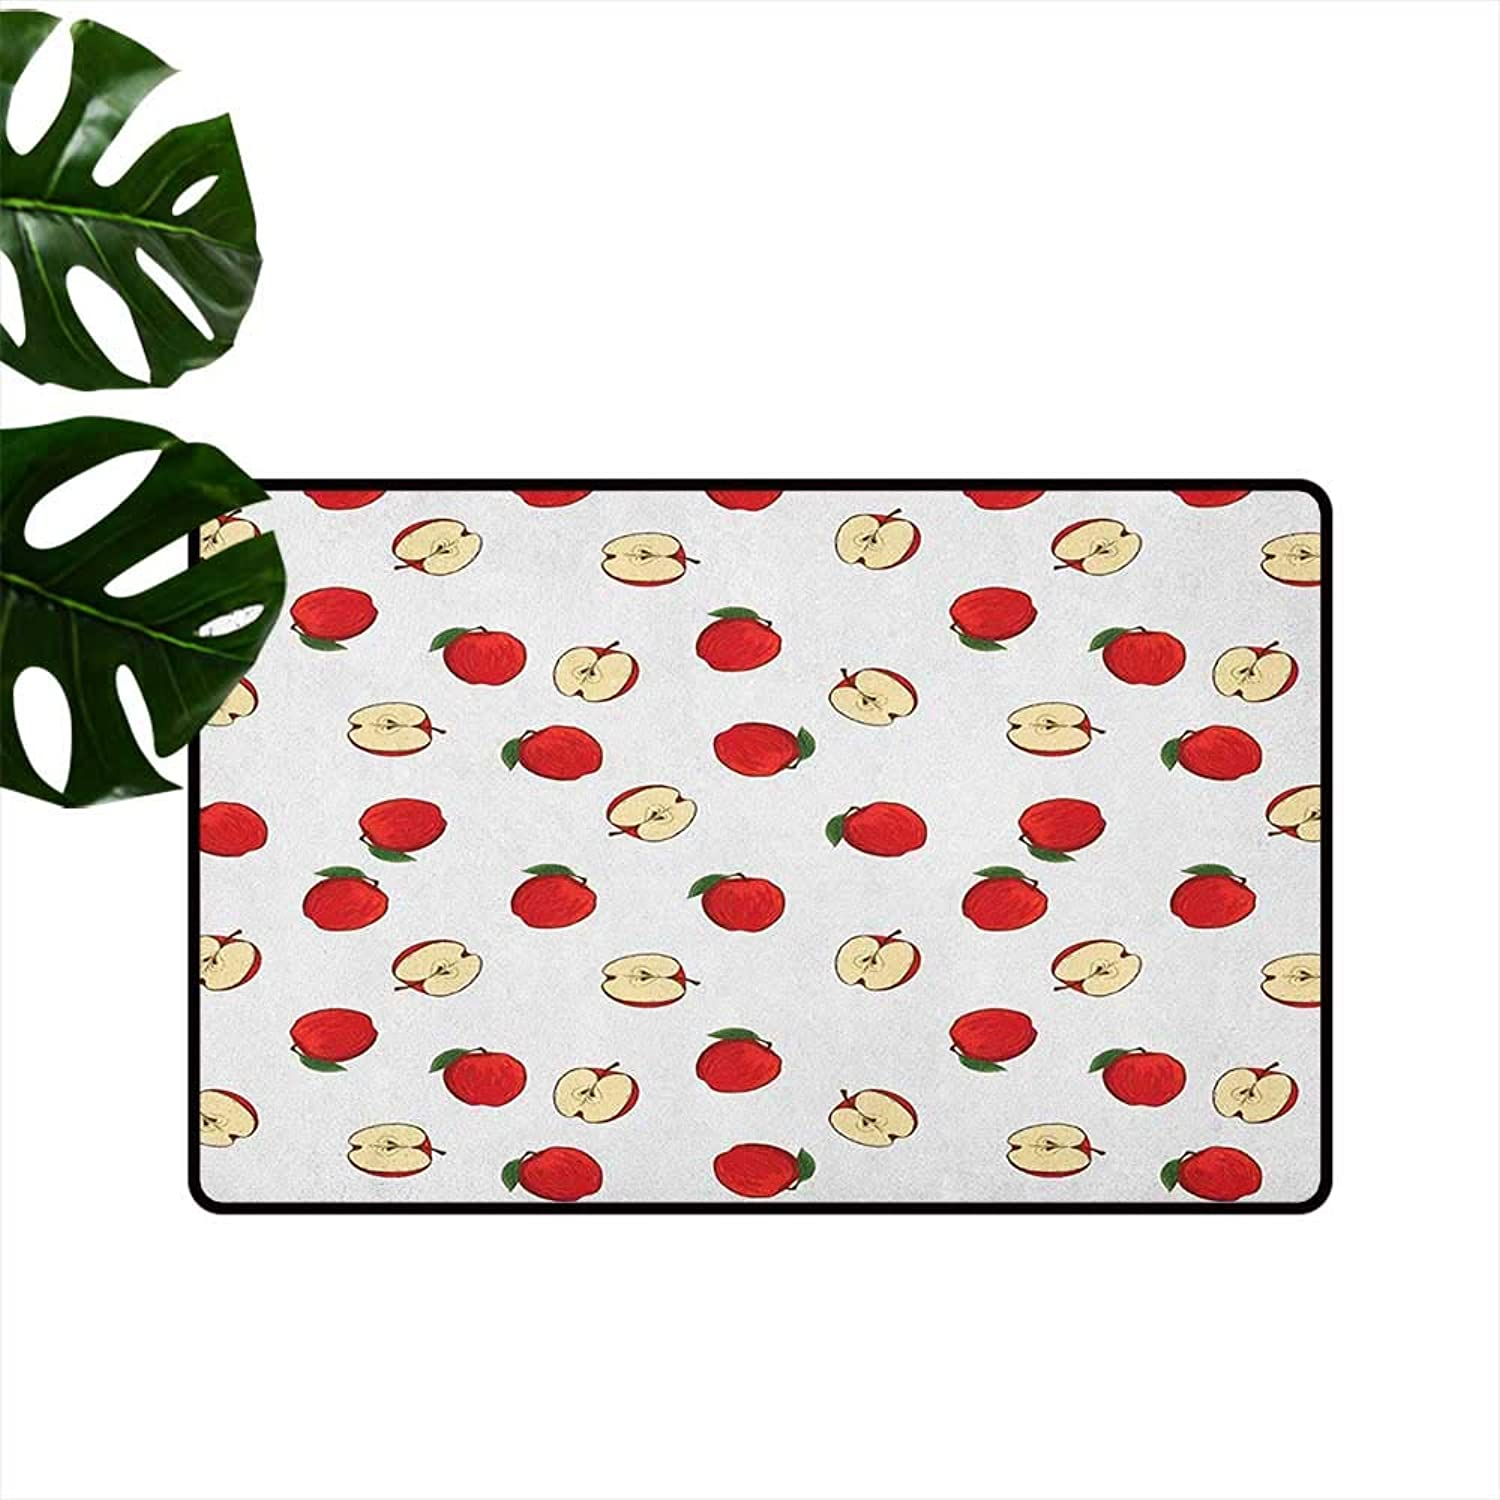 Apple Fashion Door mat Hand Drawn Vibrant Fruit Slices Products of Summer Harvest Picnic Themed Nature Hard and wear Resistant W35 x L59 Eggshell Red